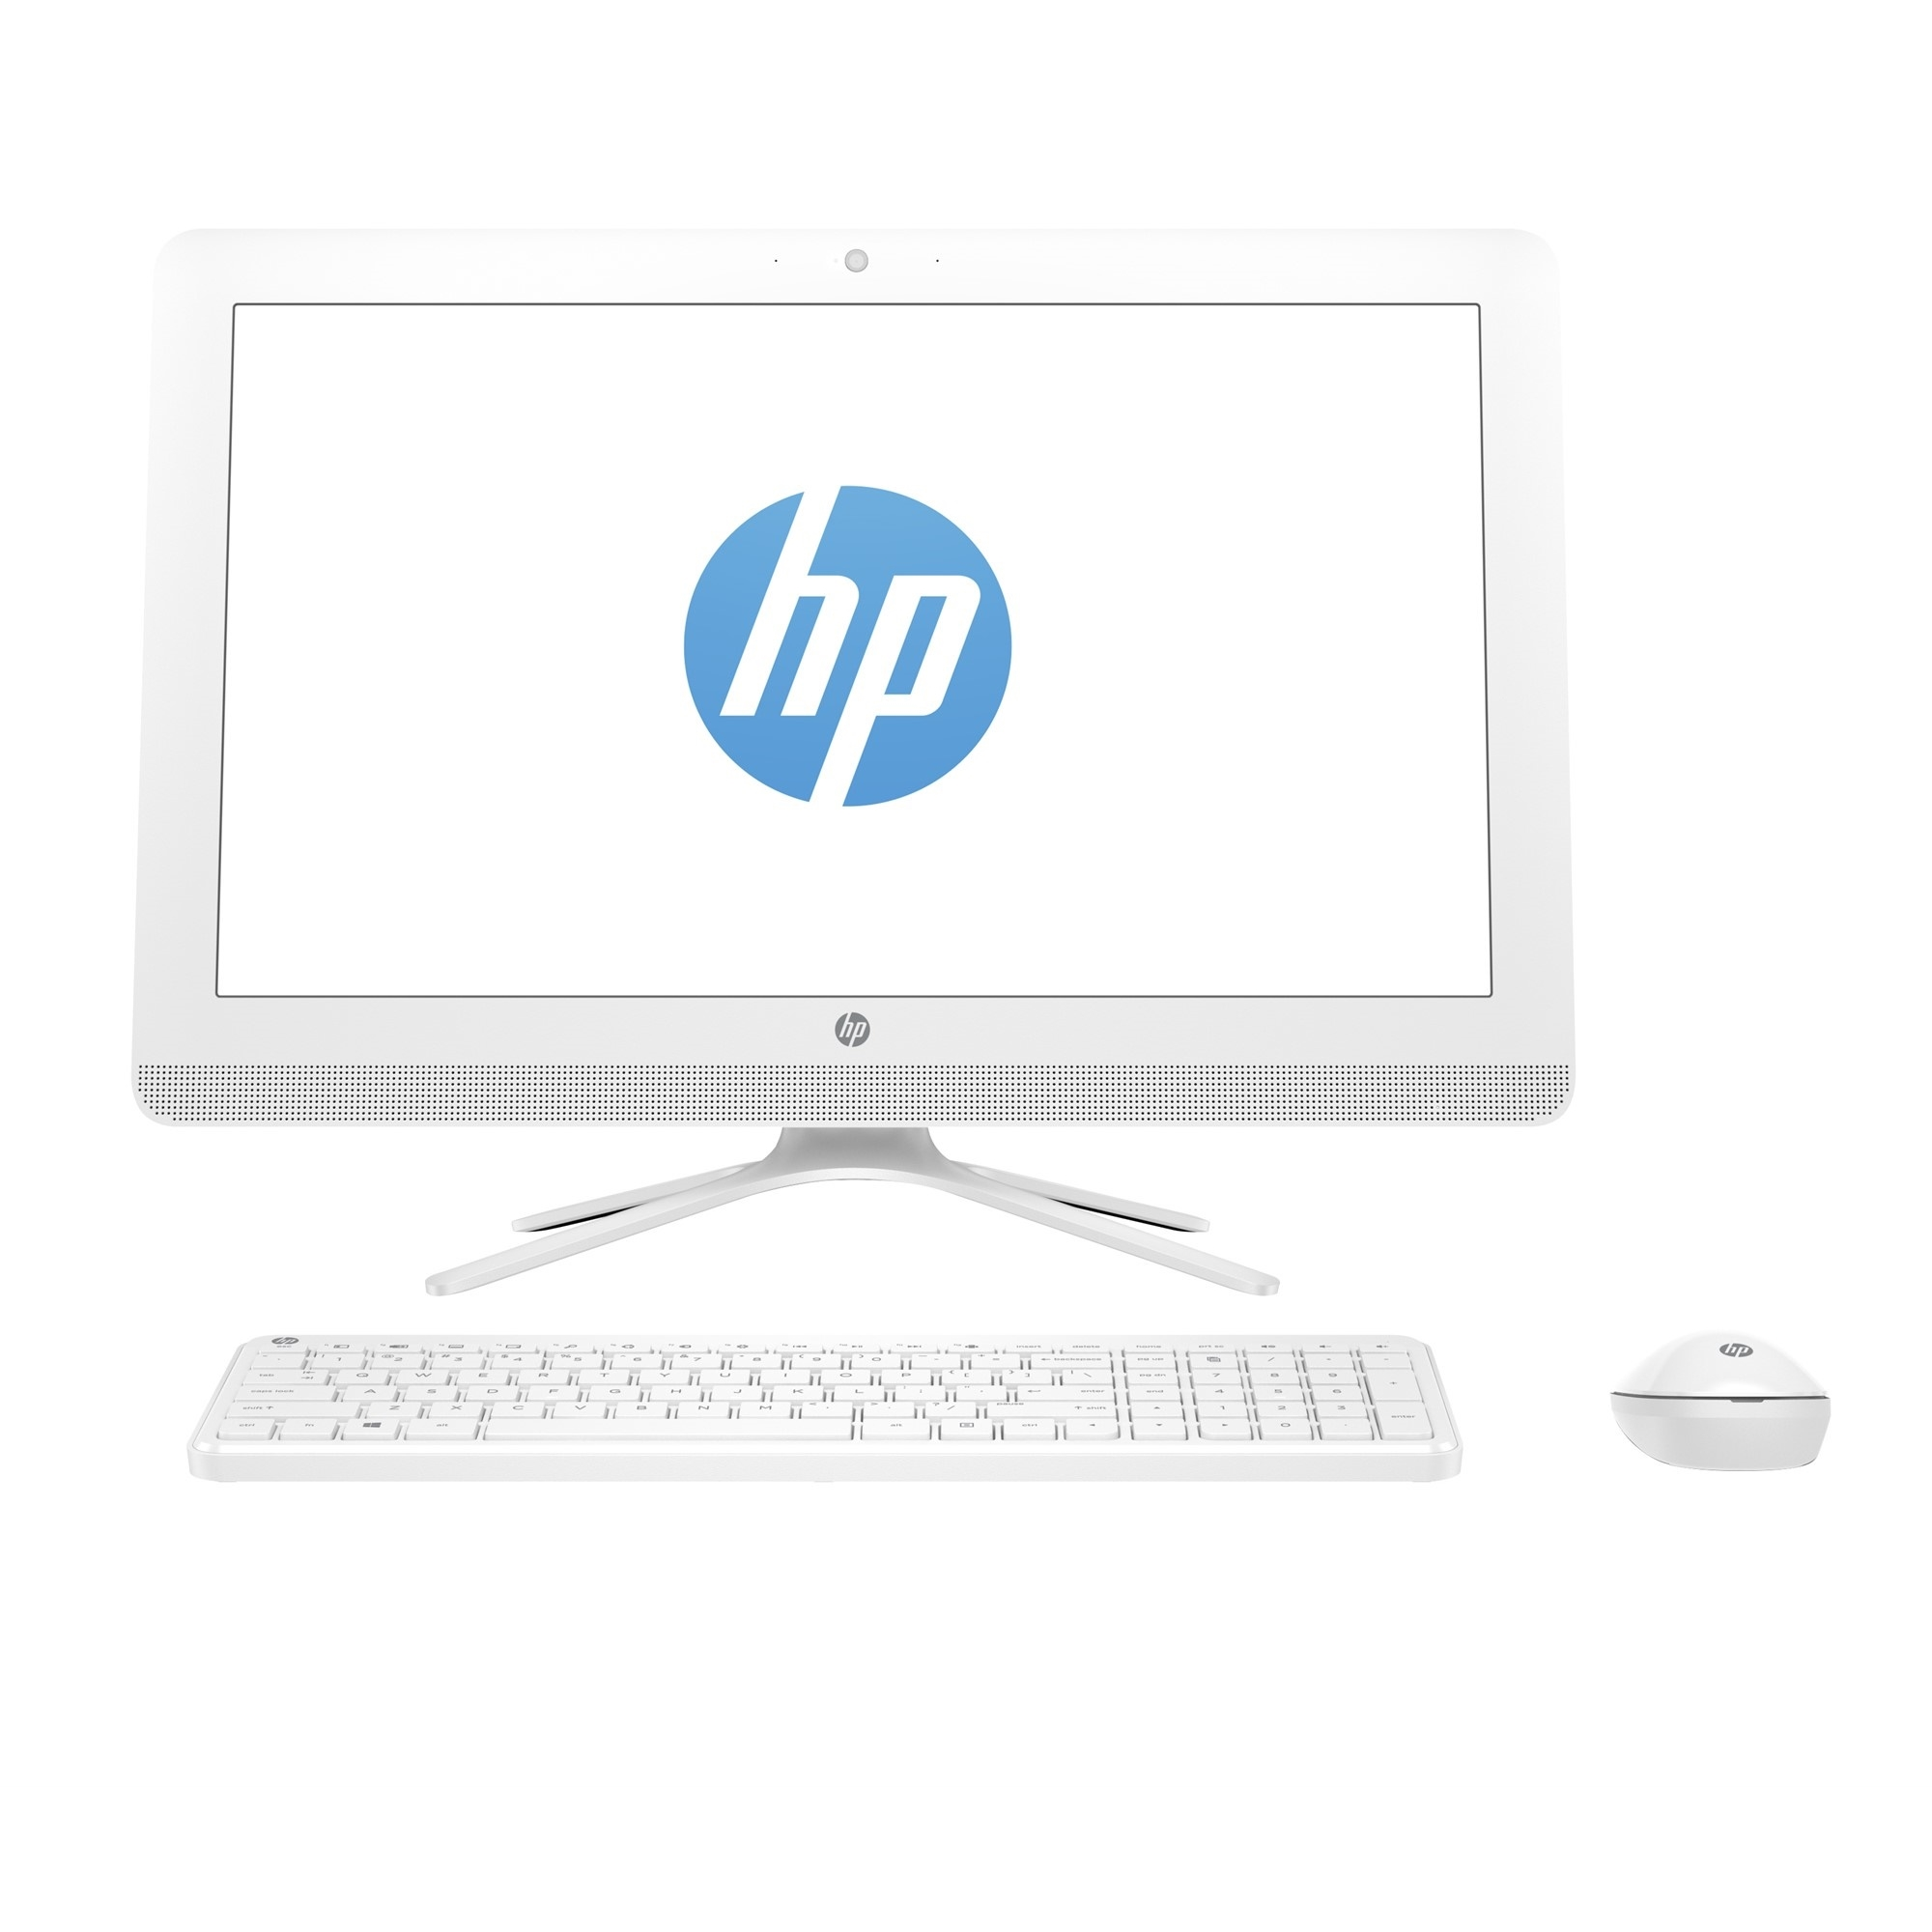 "HP 2BZ18EA 24-E008NT i3-7100U 4GB 256SSD O/B VGA 23.8"" NONTOUCH FREDOOS ALL IN ONE PC"